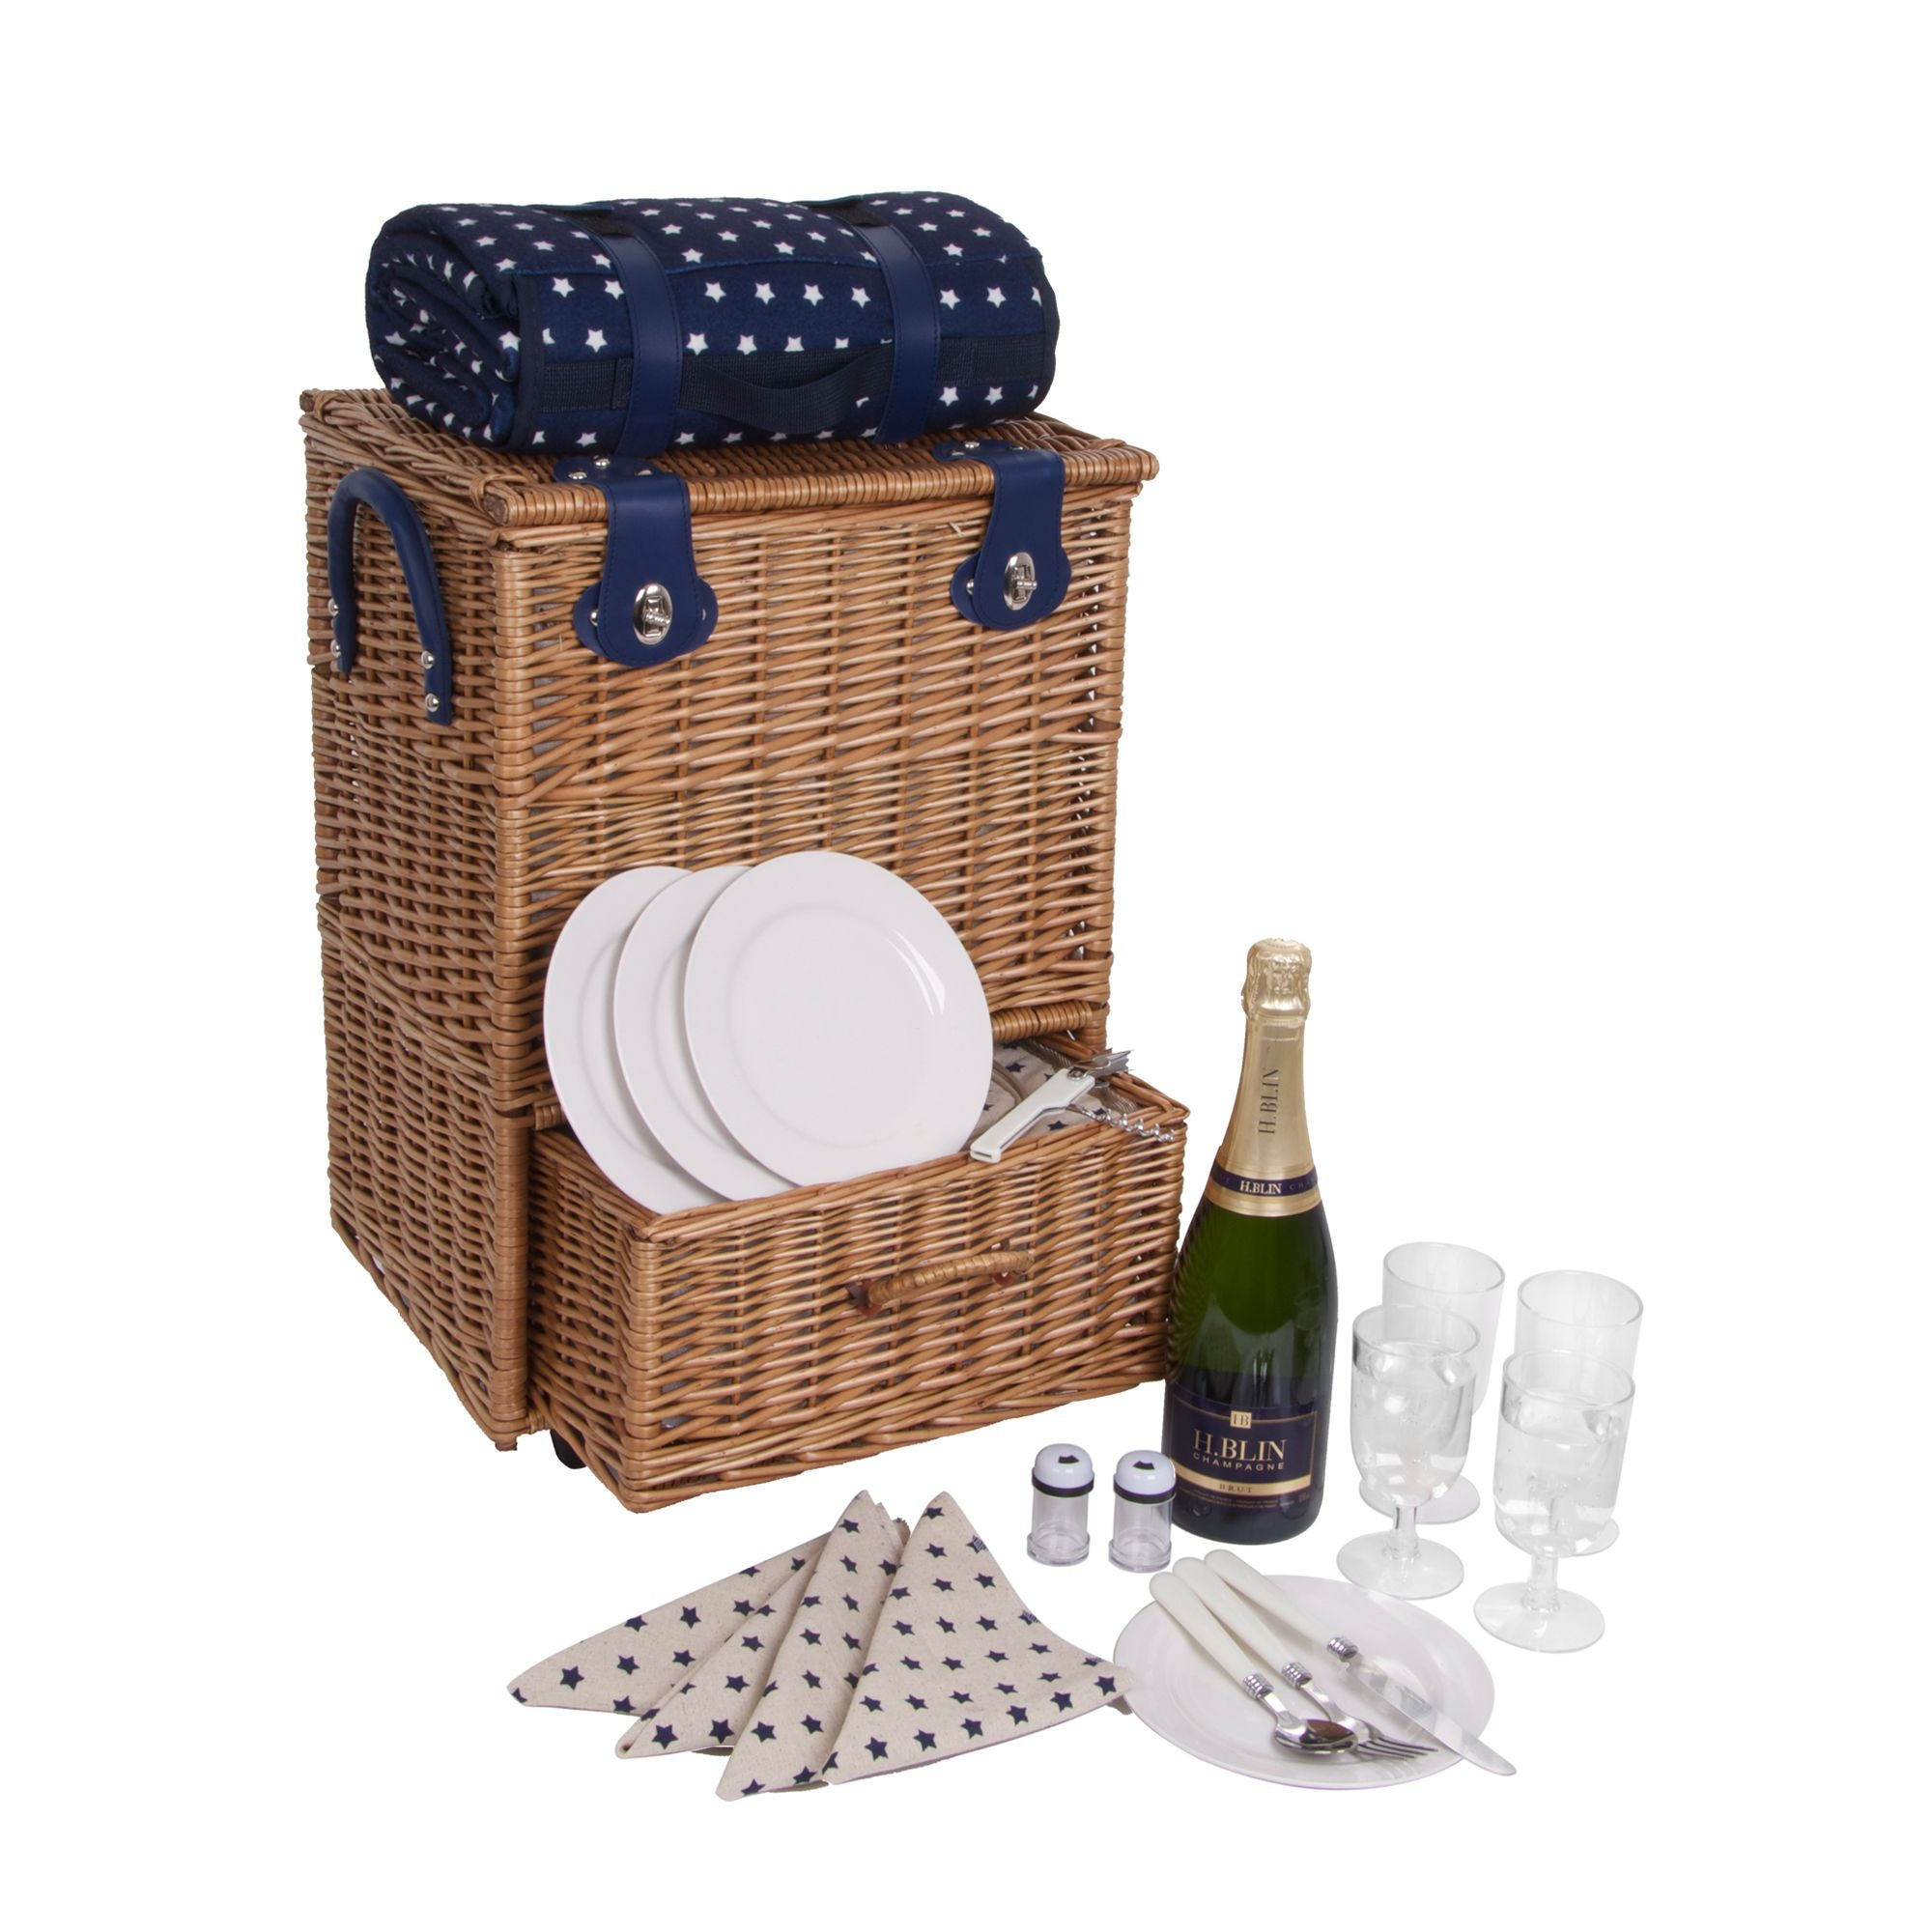 Trolley Picnic Deluxe Star Hamper by GDS - The Pop Up Deli